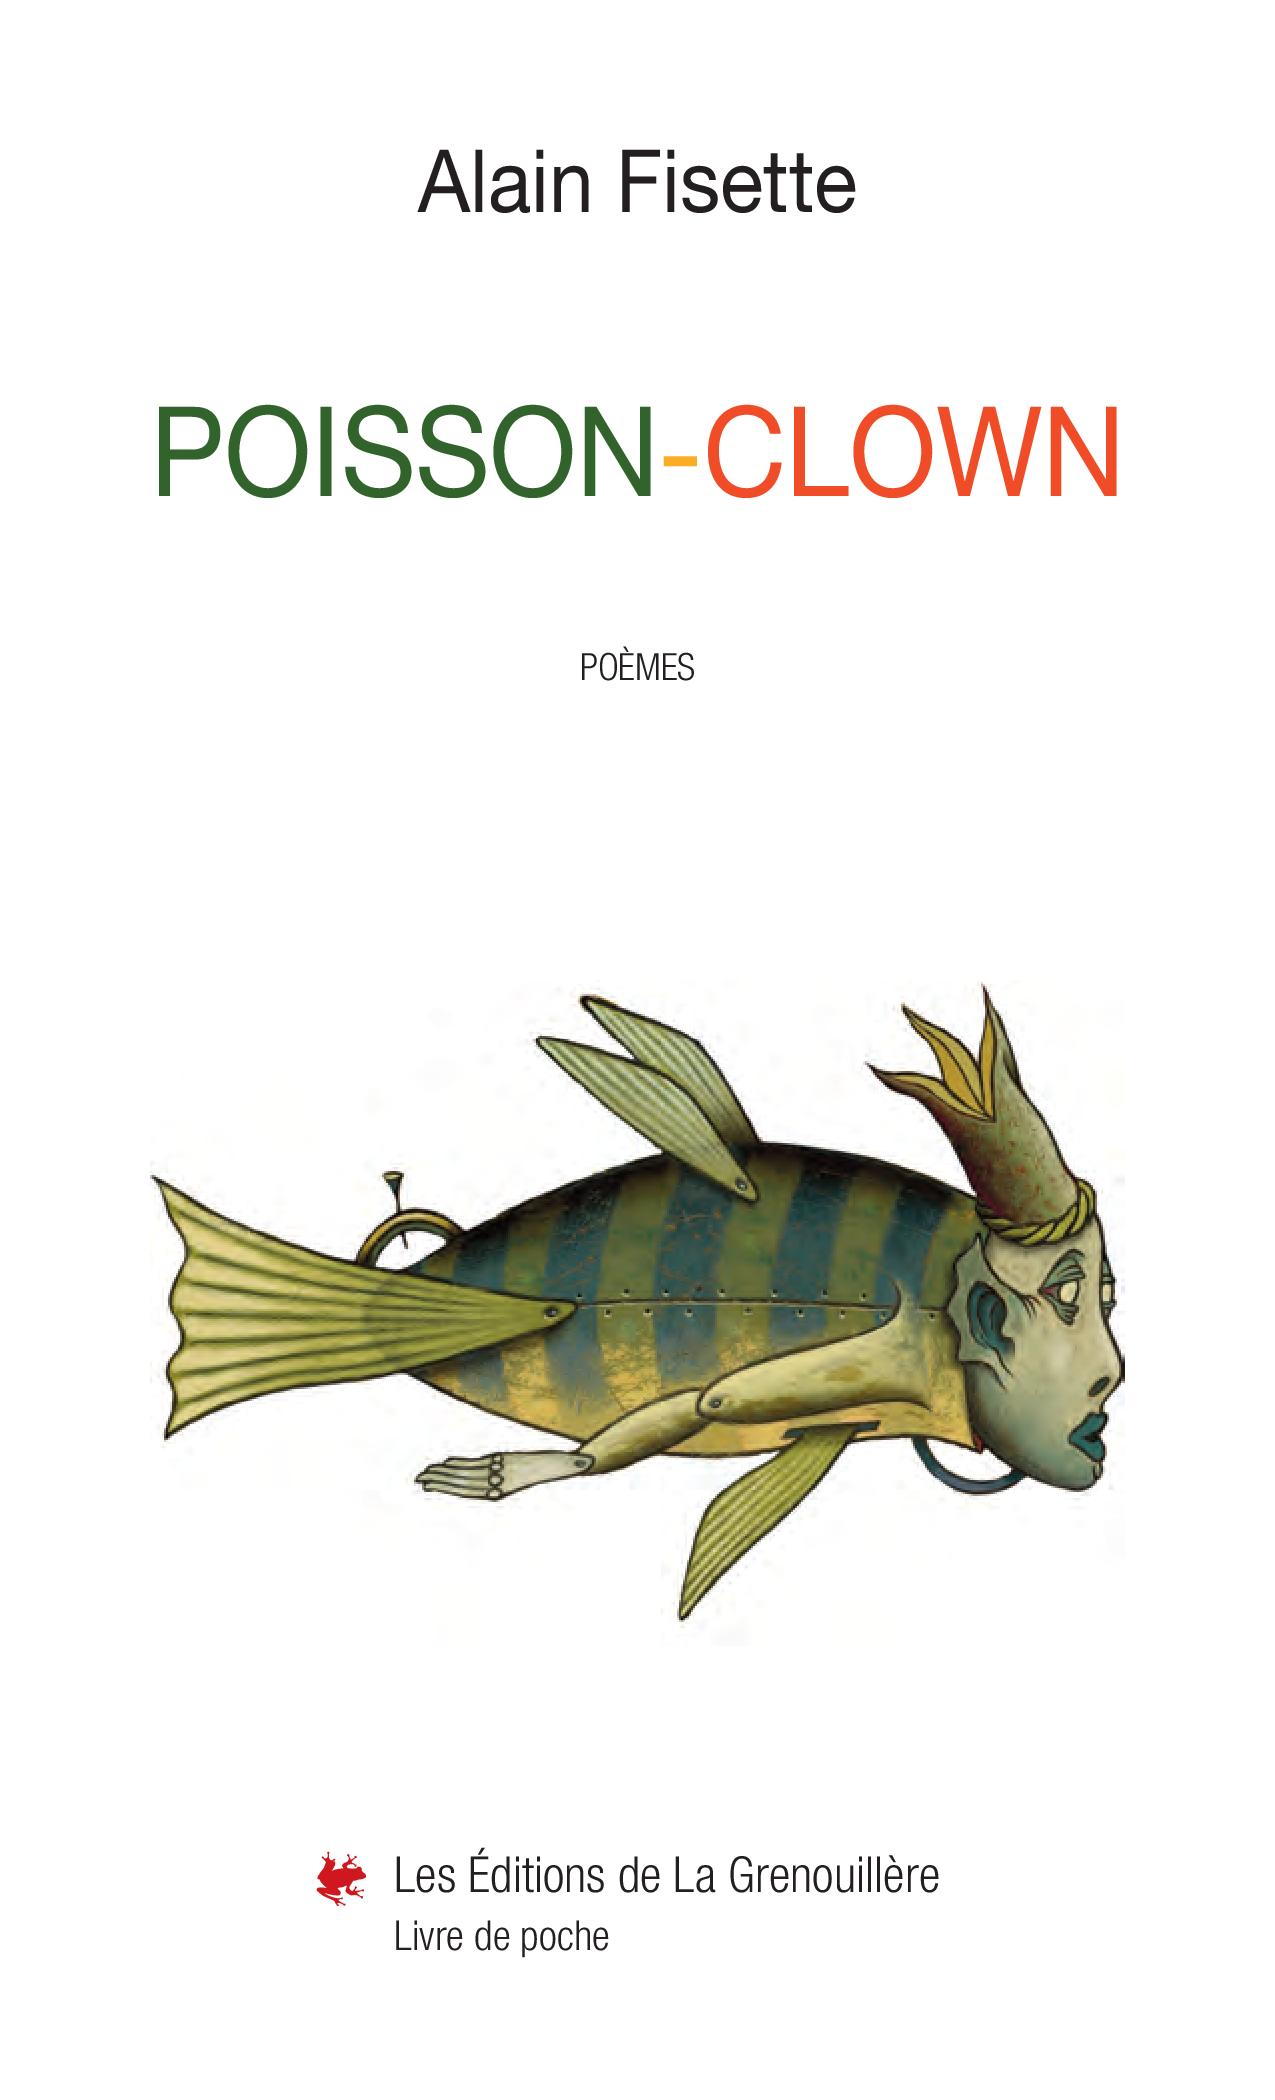 Poisson-clown